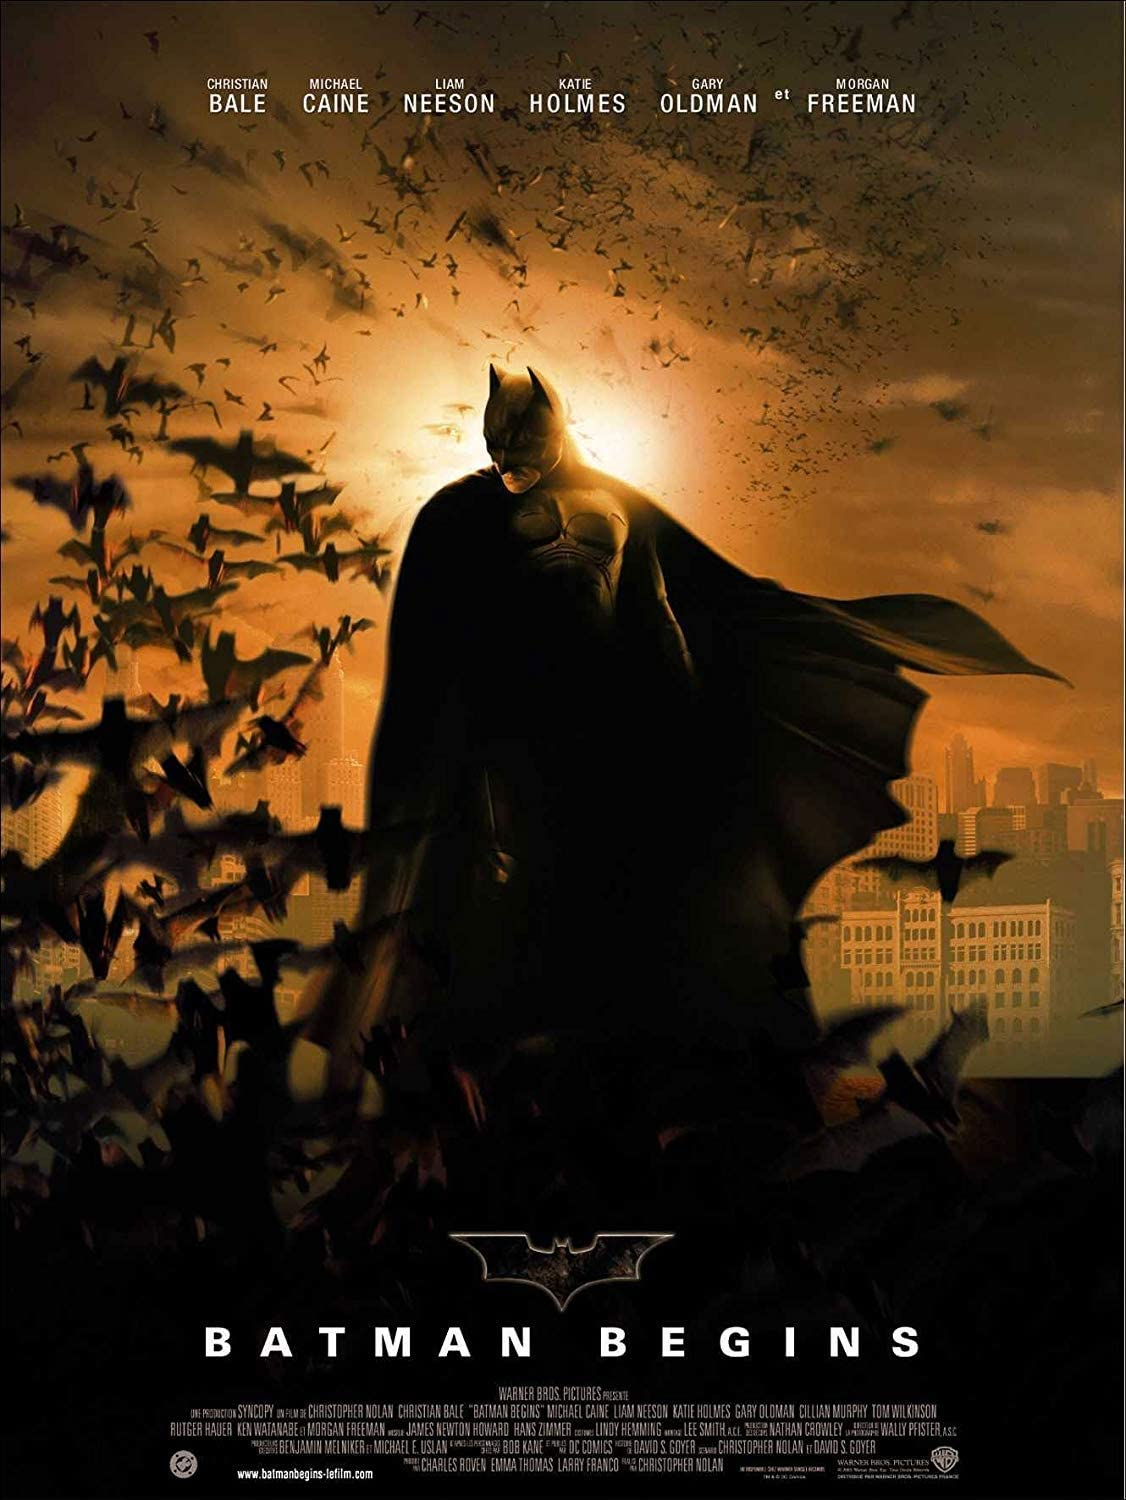 Film Review: Batman Begins